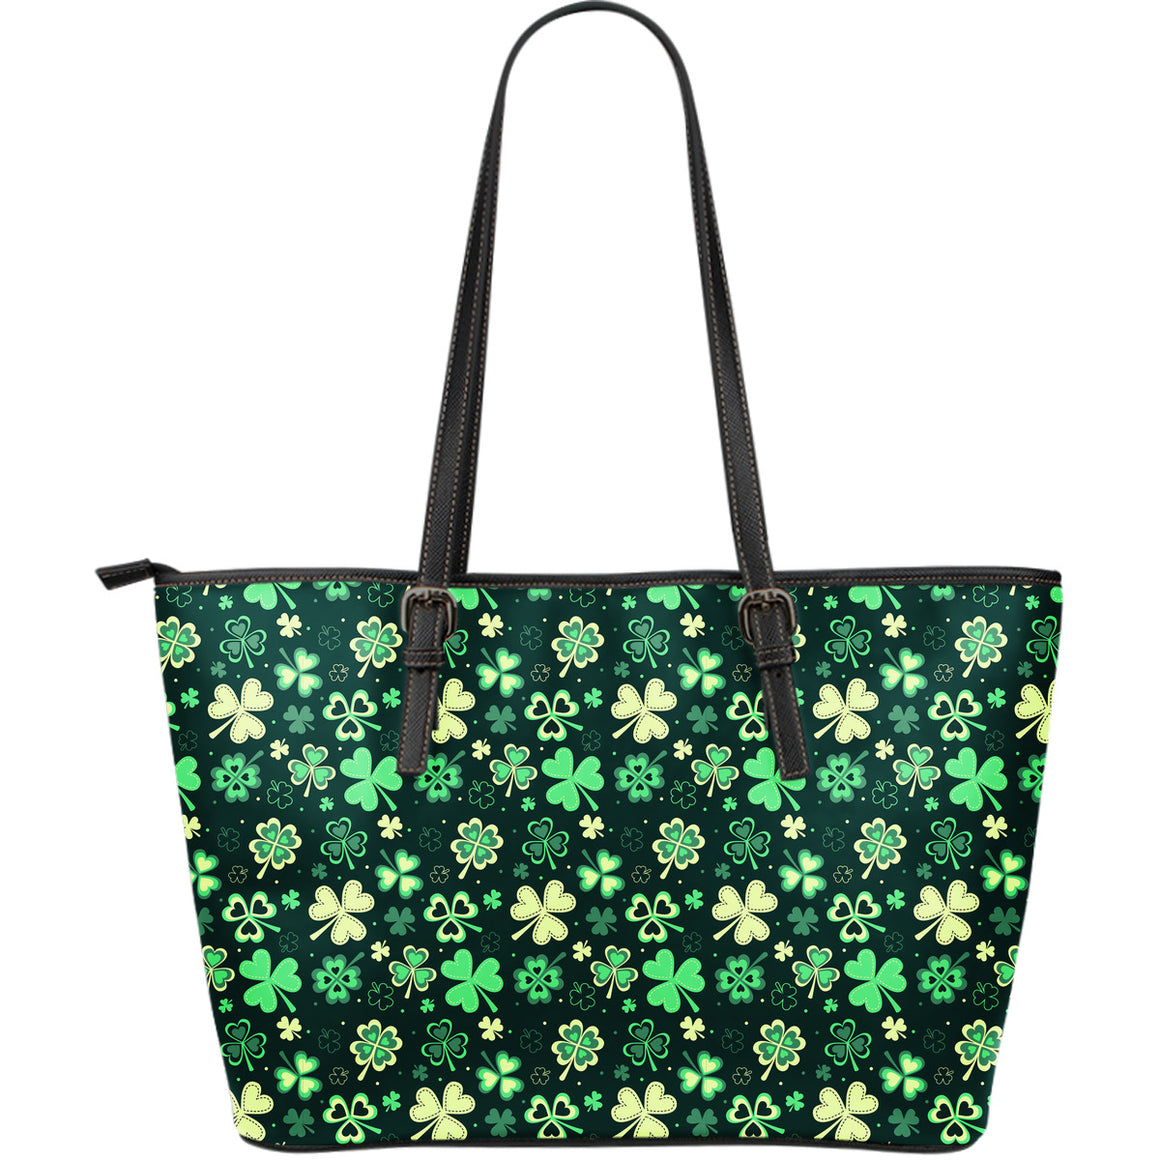 Patrick Large Leather Tote